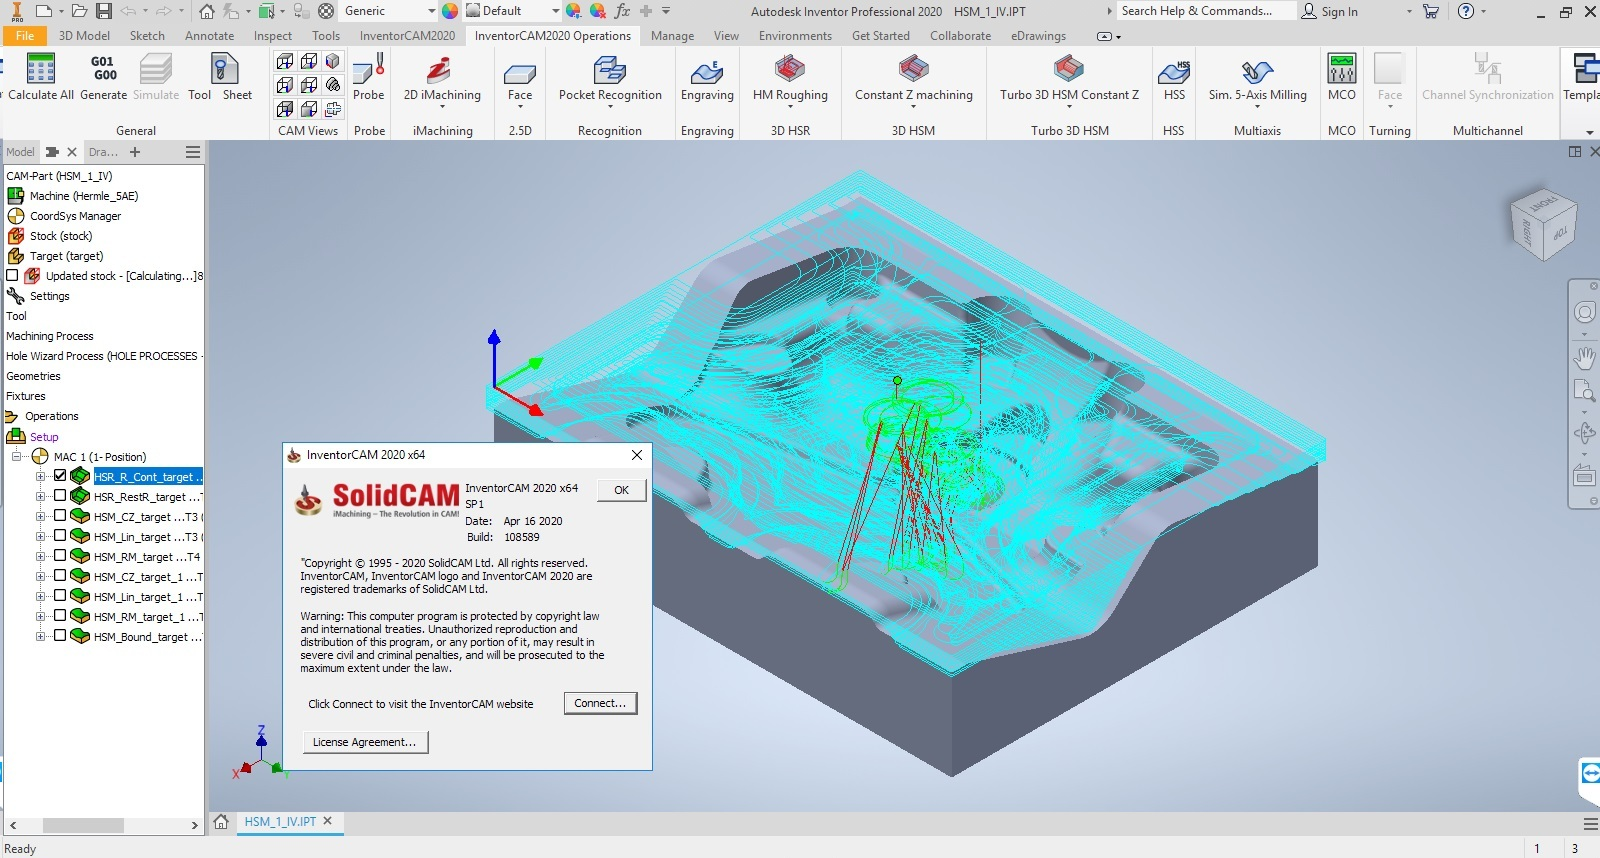 Working with InventorCAM 2020 SP1 for Autodesk Inventor 2018-2020 full license